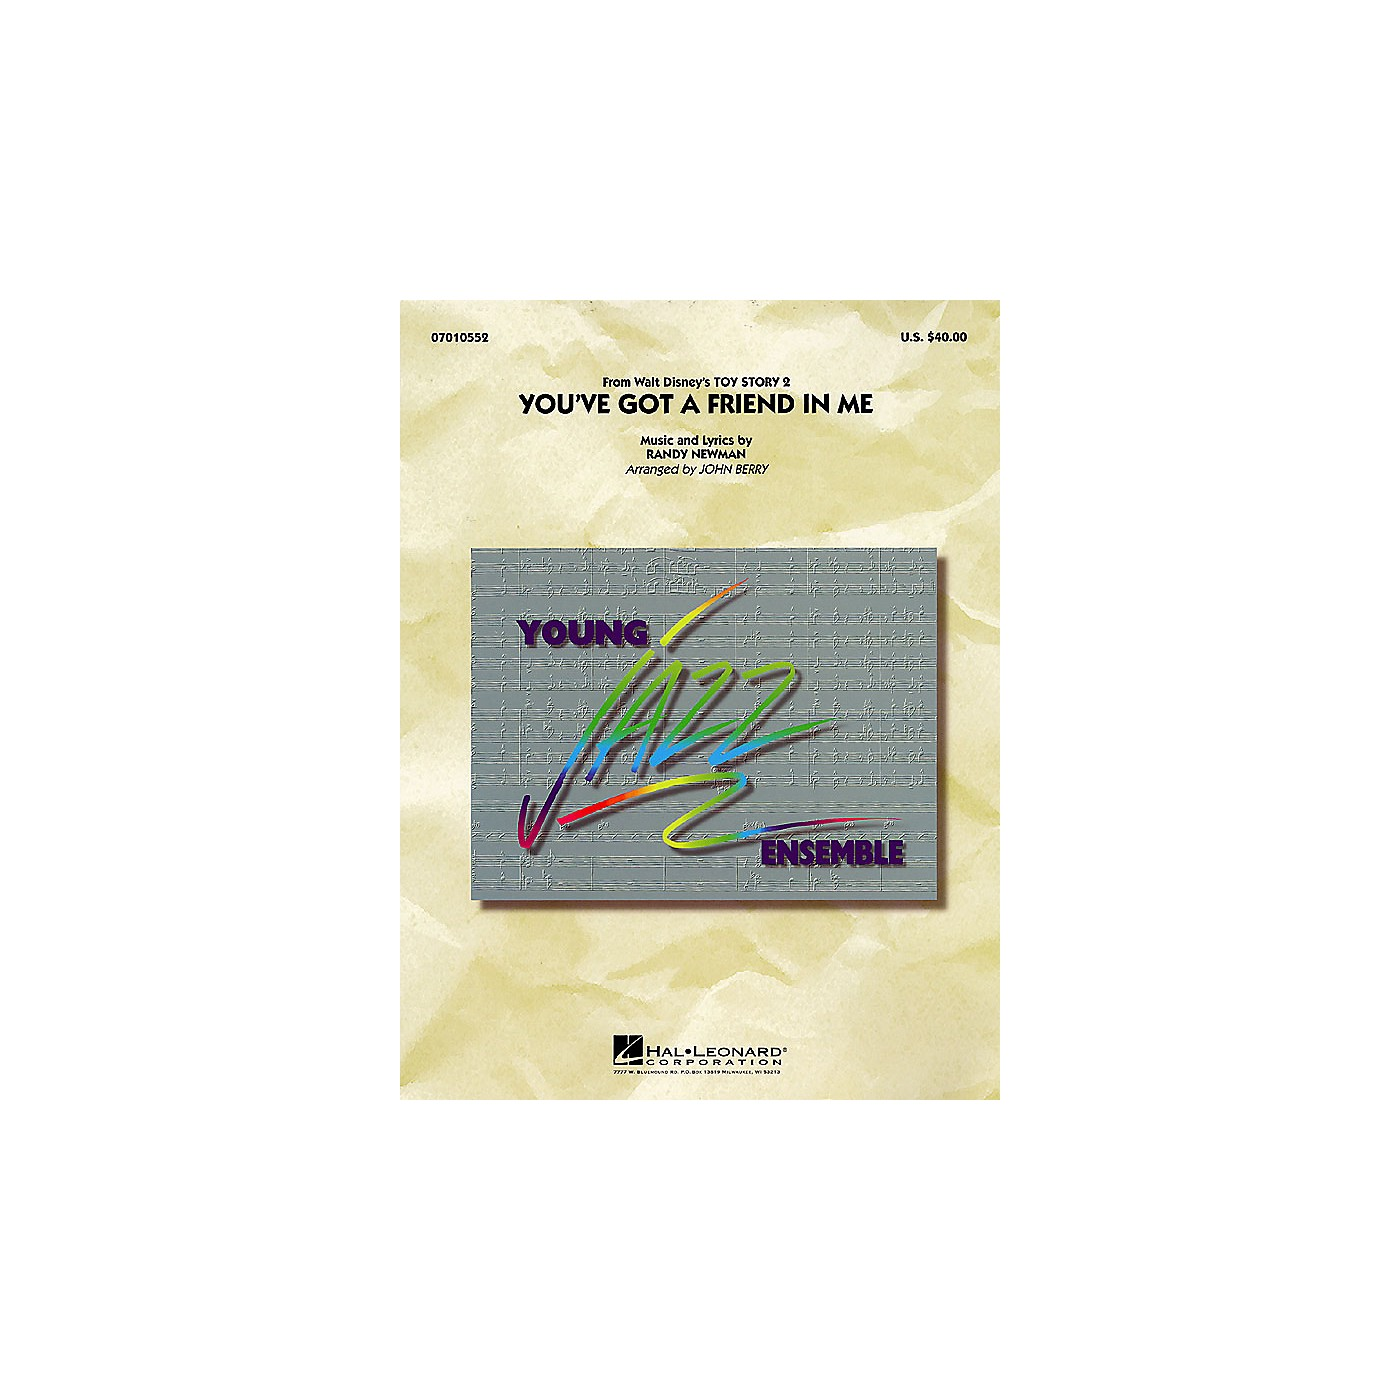 Hal Leonard You've Got a Friend in Me Jazz Band Level 3 Arranged by John Berry thumbnail